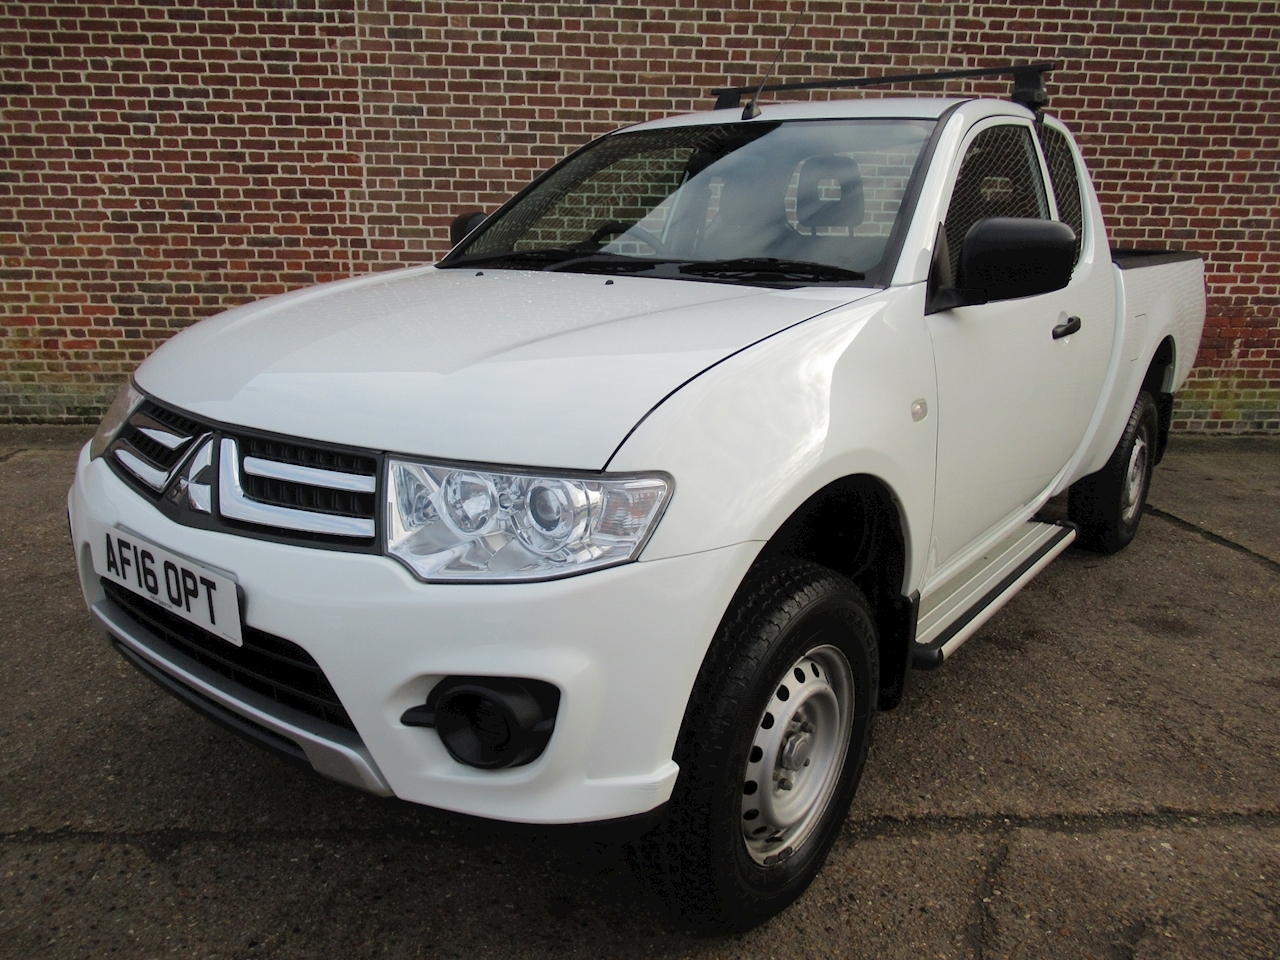 Mitsubishi L200 Di-D 4X4 4Life Club Cab Pick-Up 2.5 Manual Diesel